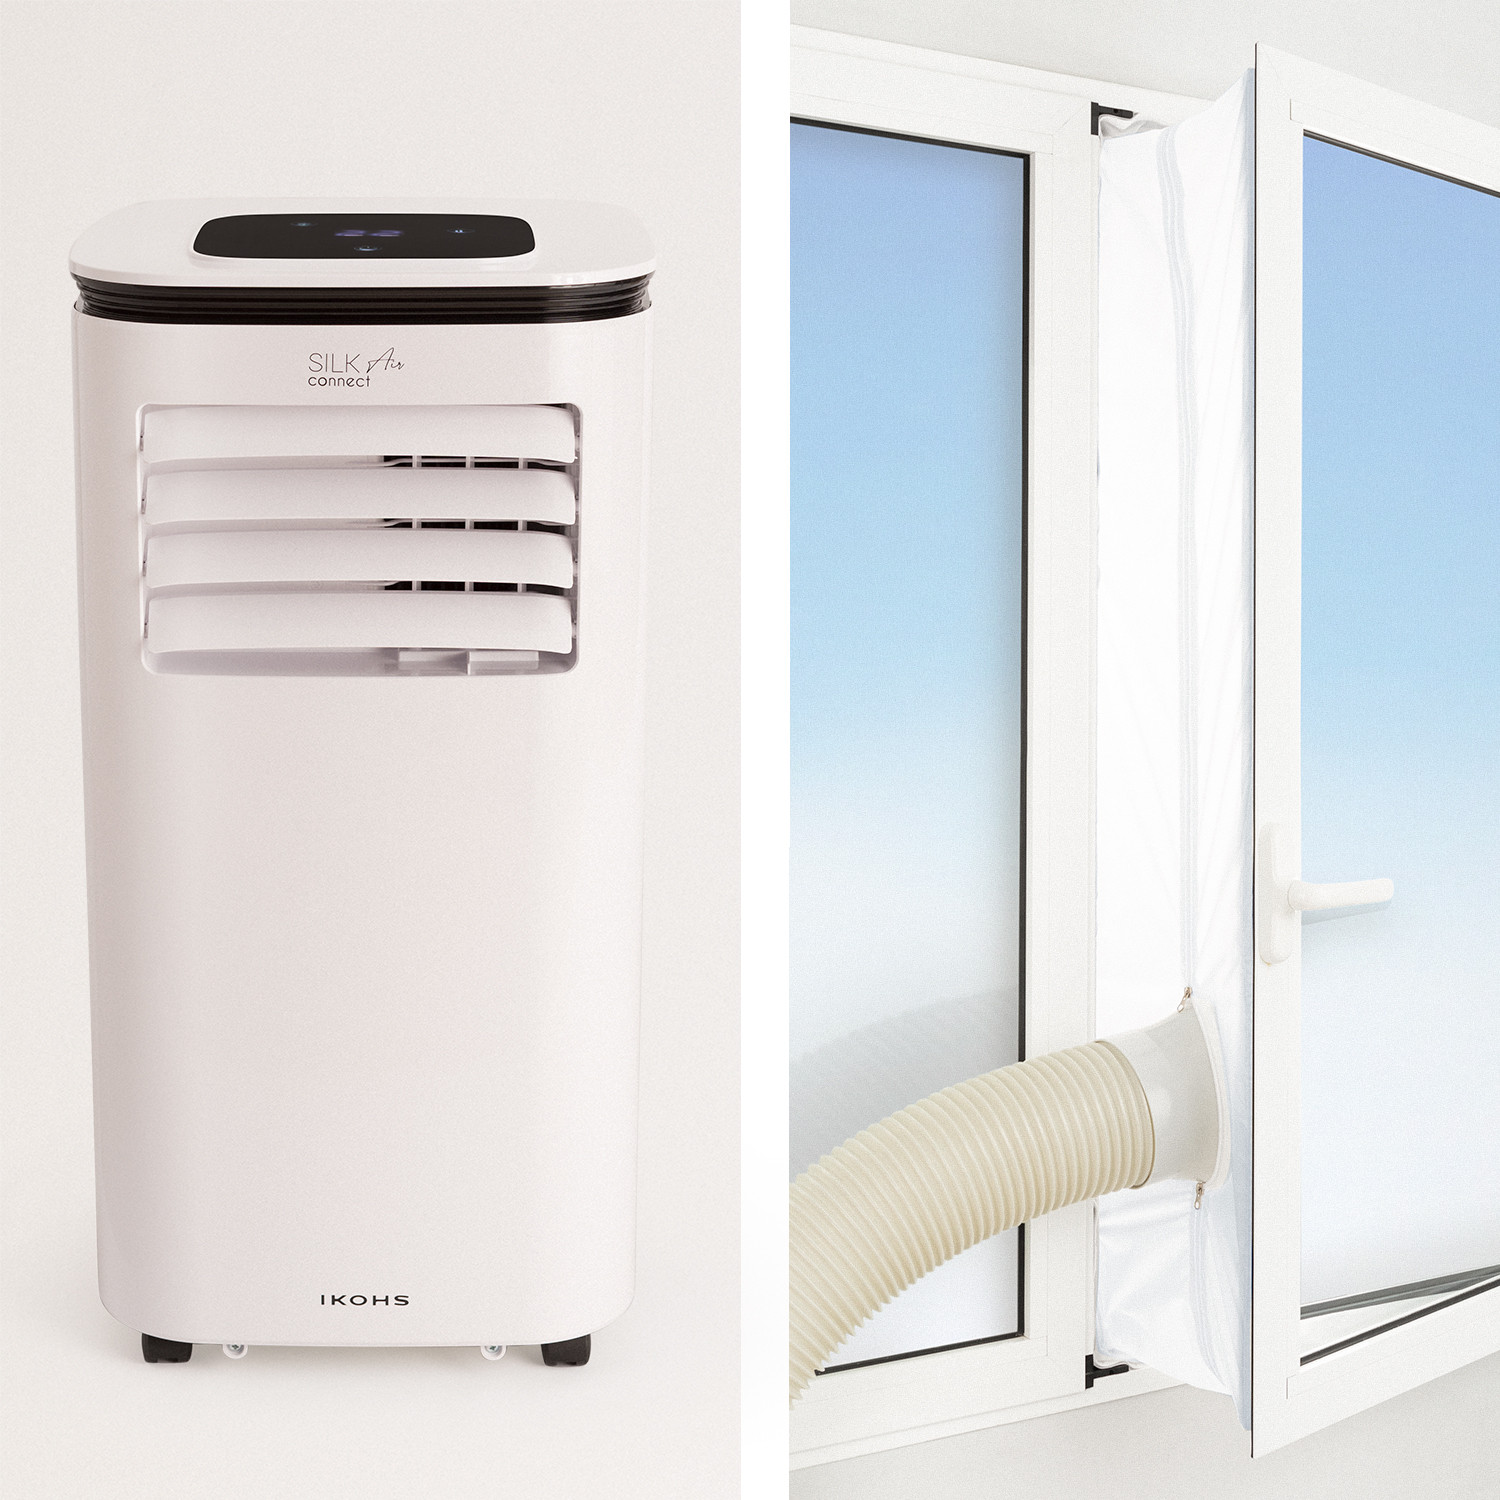 PACK - SILKAIR CONNECT Portable Air Conditioner 3in1 WiFi + EXTRACTION AND INSULATION KIT for casement windows, imagen de galería 1